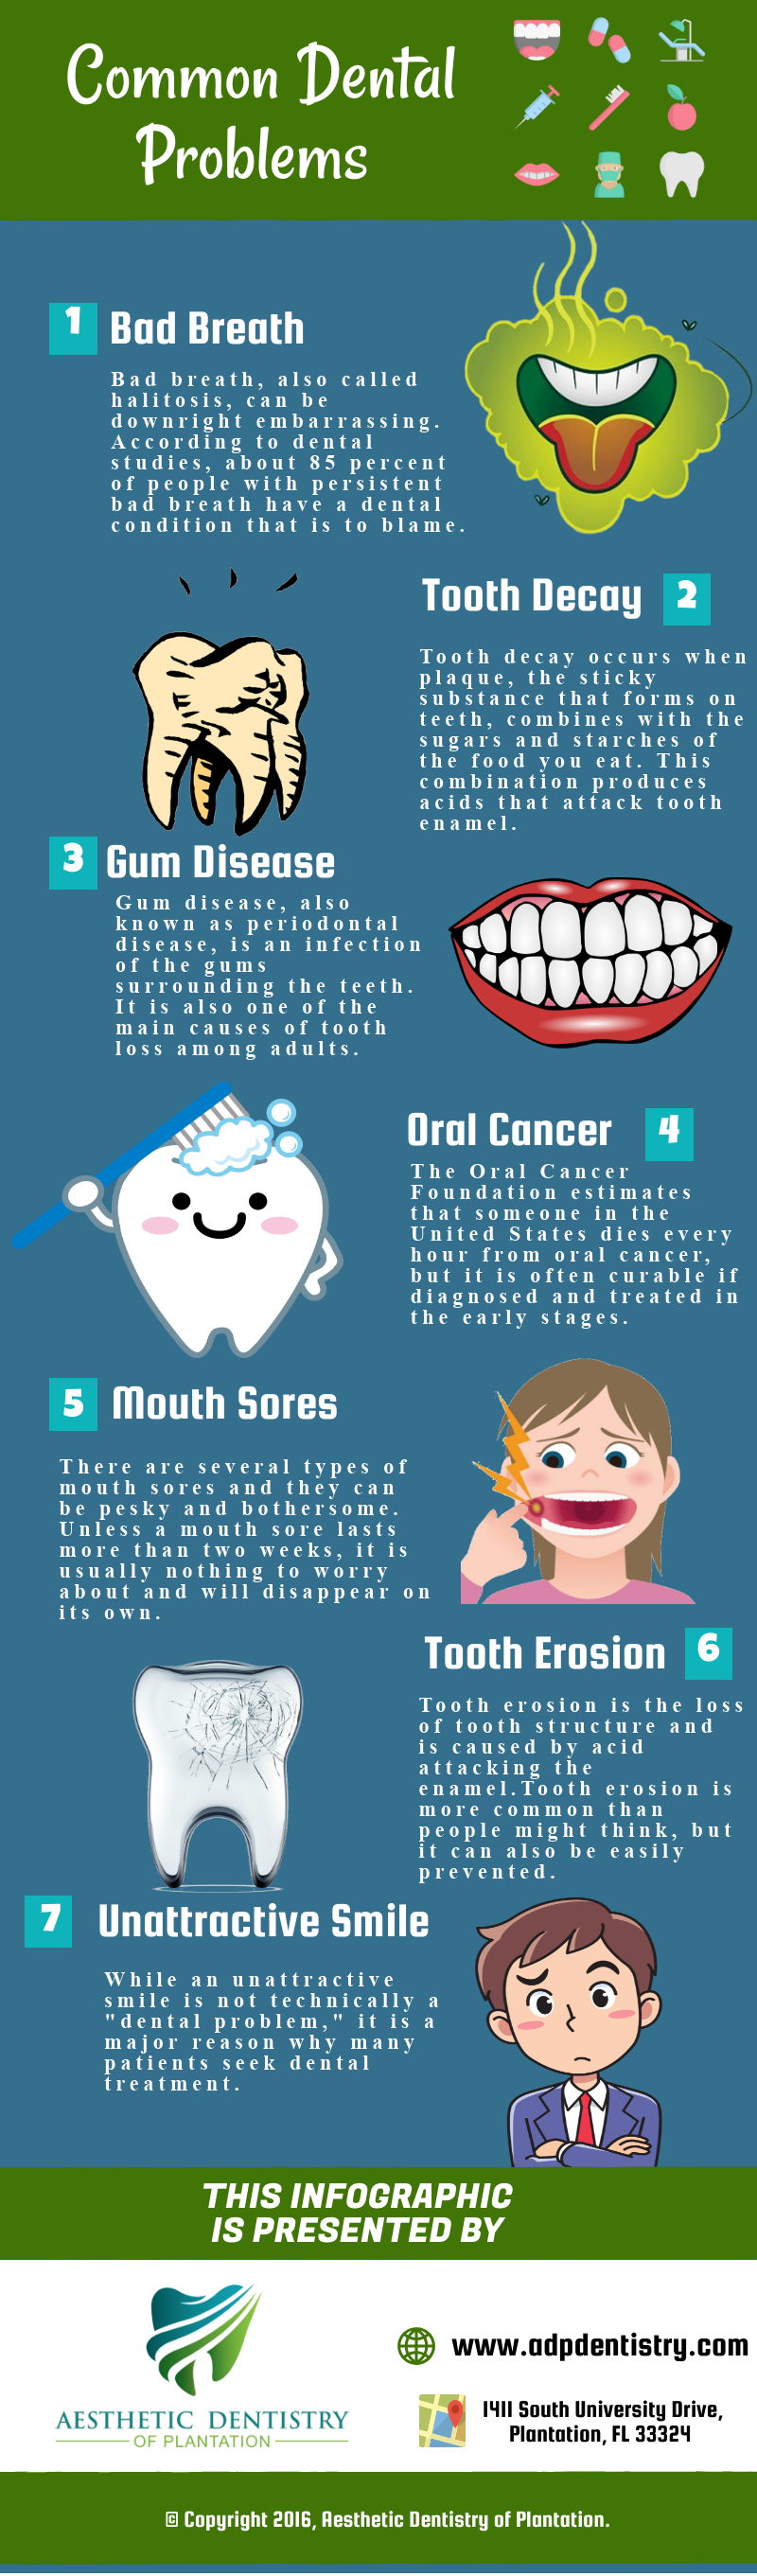 Quality Dental Care For Your Whole Family Dental Care Clinic Family Dental Care Aesthetic Dentistry